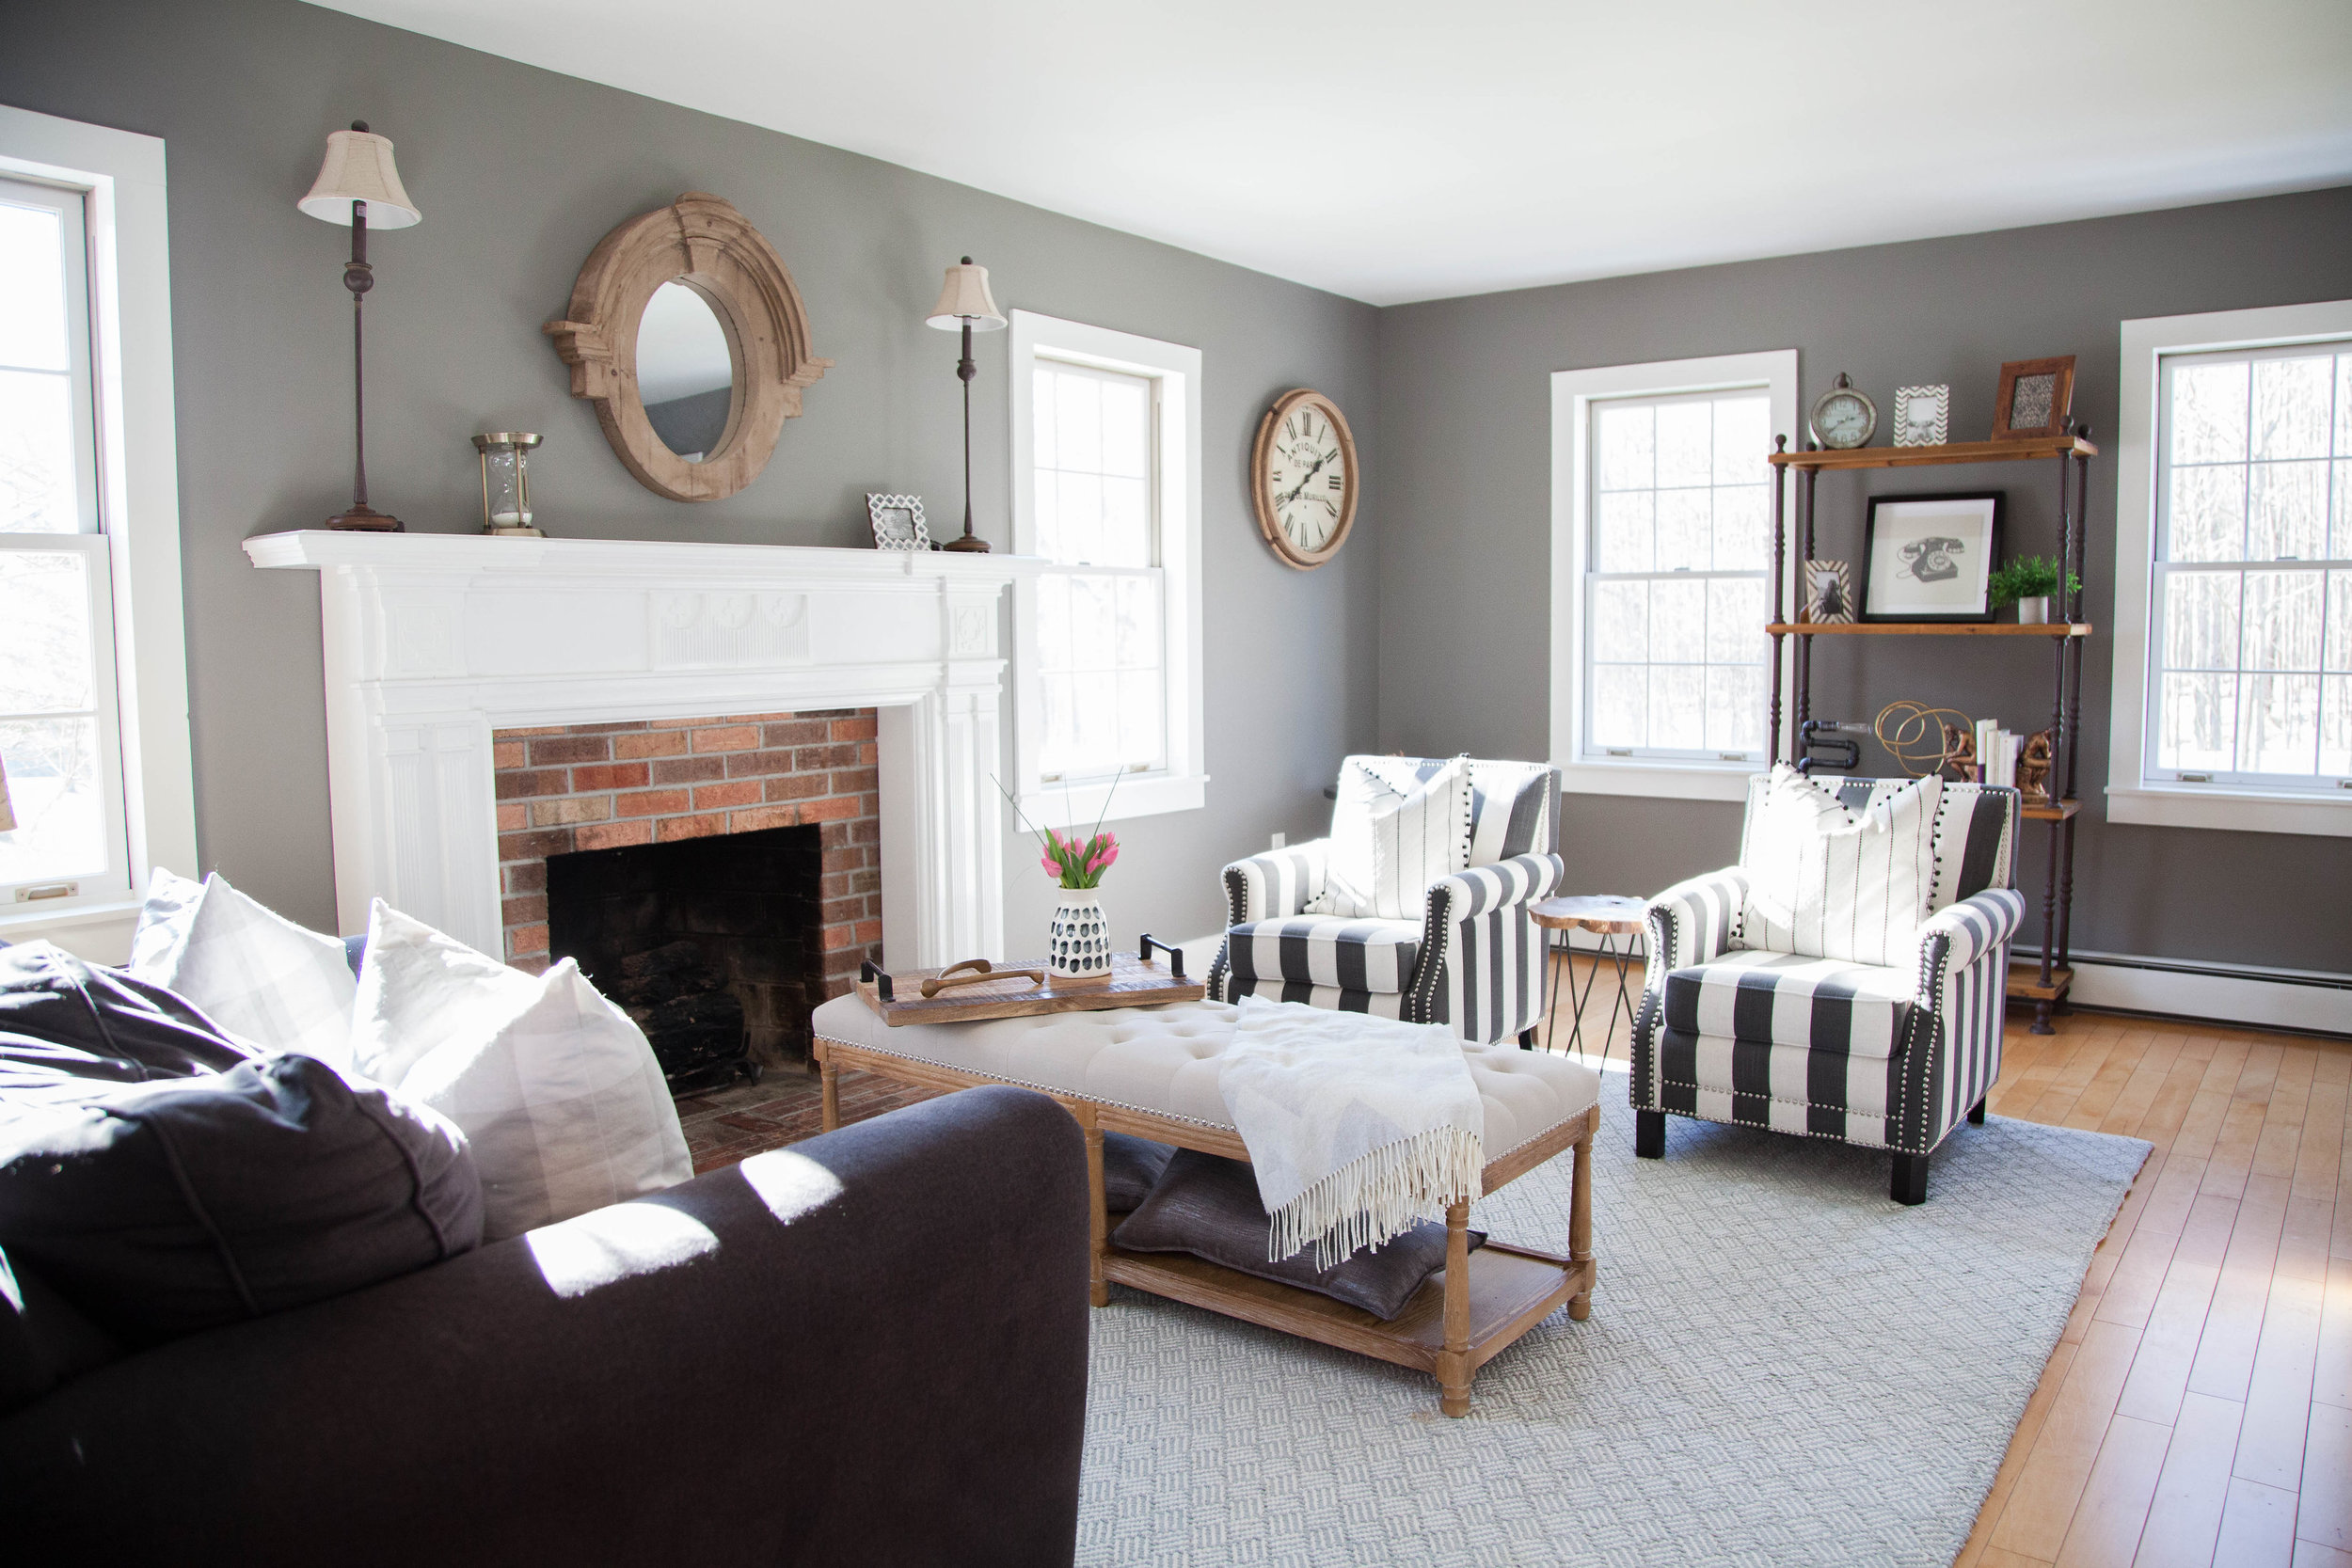 Living room with couch and chairs, grey walls, and fireplace in Hamilton, NY